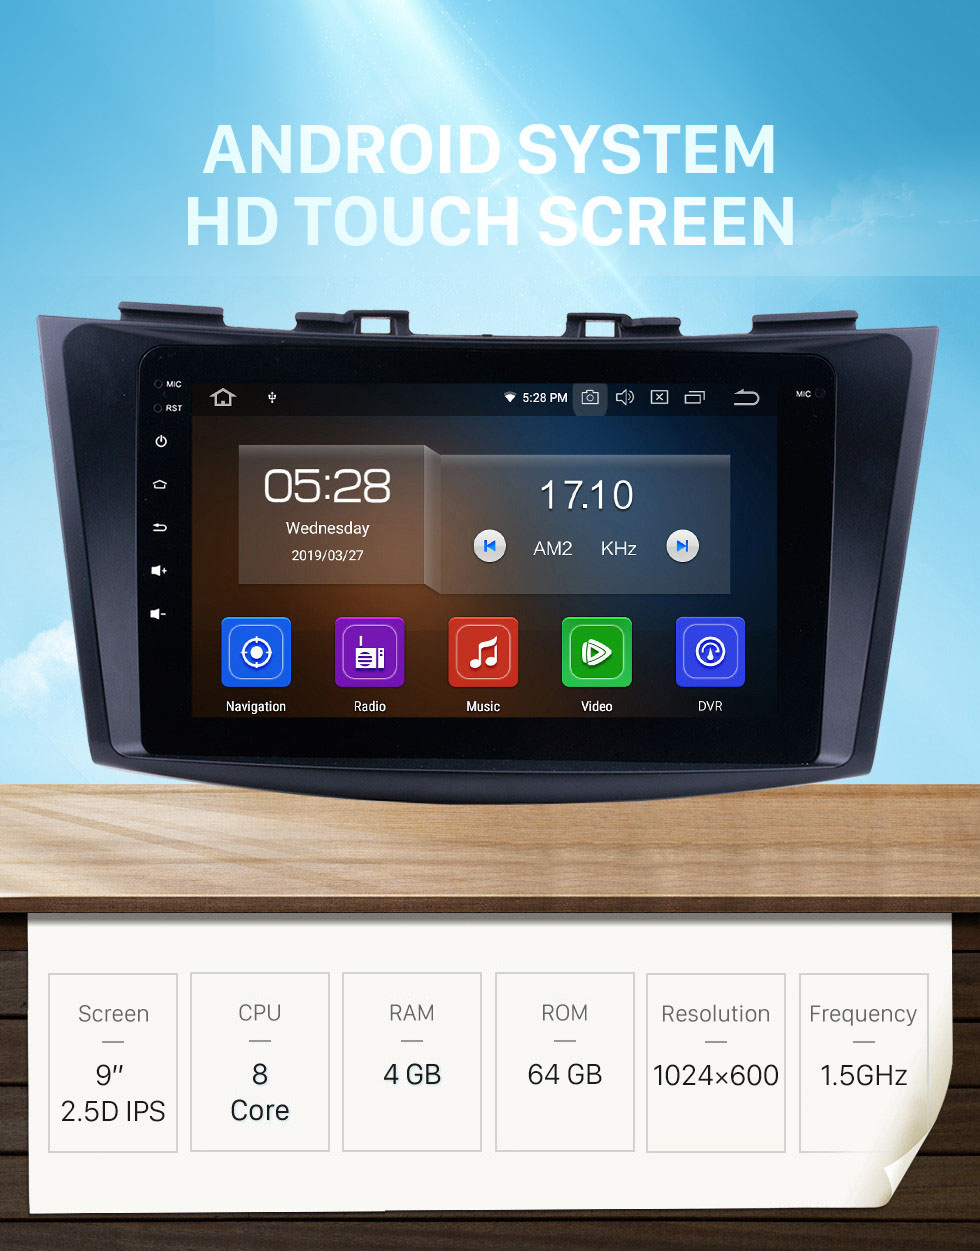 Seicane Android 10.0 Radio GPS Navigation system for 2011 2012 2013 Suzuki Swift Ertiga with Mirror link Touch Screen DVR Backup camera TV USB SD WIFI Steering Wheel control 8-core CPU HD 1080P Video OBD2 Bluetooth